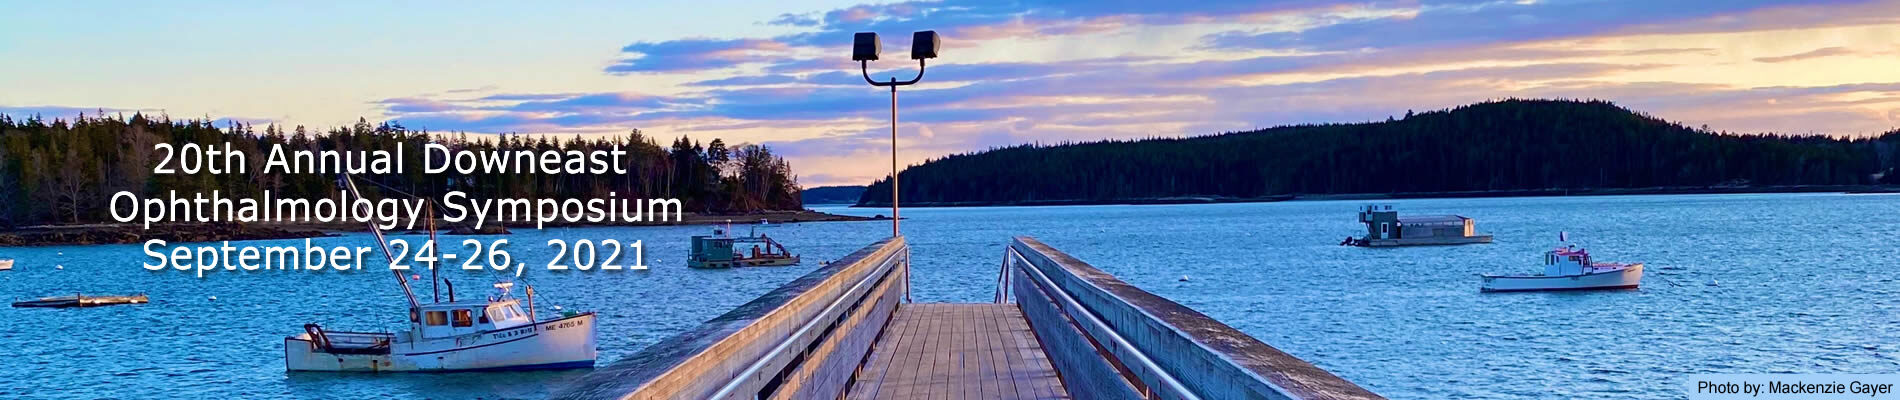 The 20th Annual Downeast Ophthalmology Symposium will be held September 24-26, 2021.